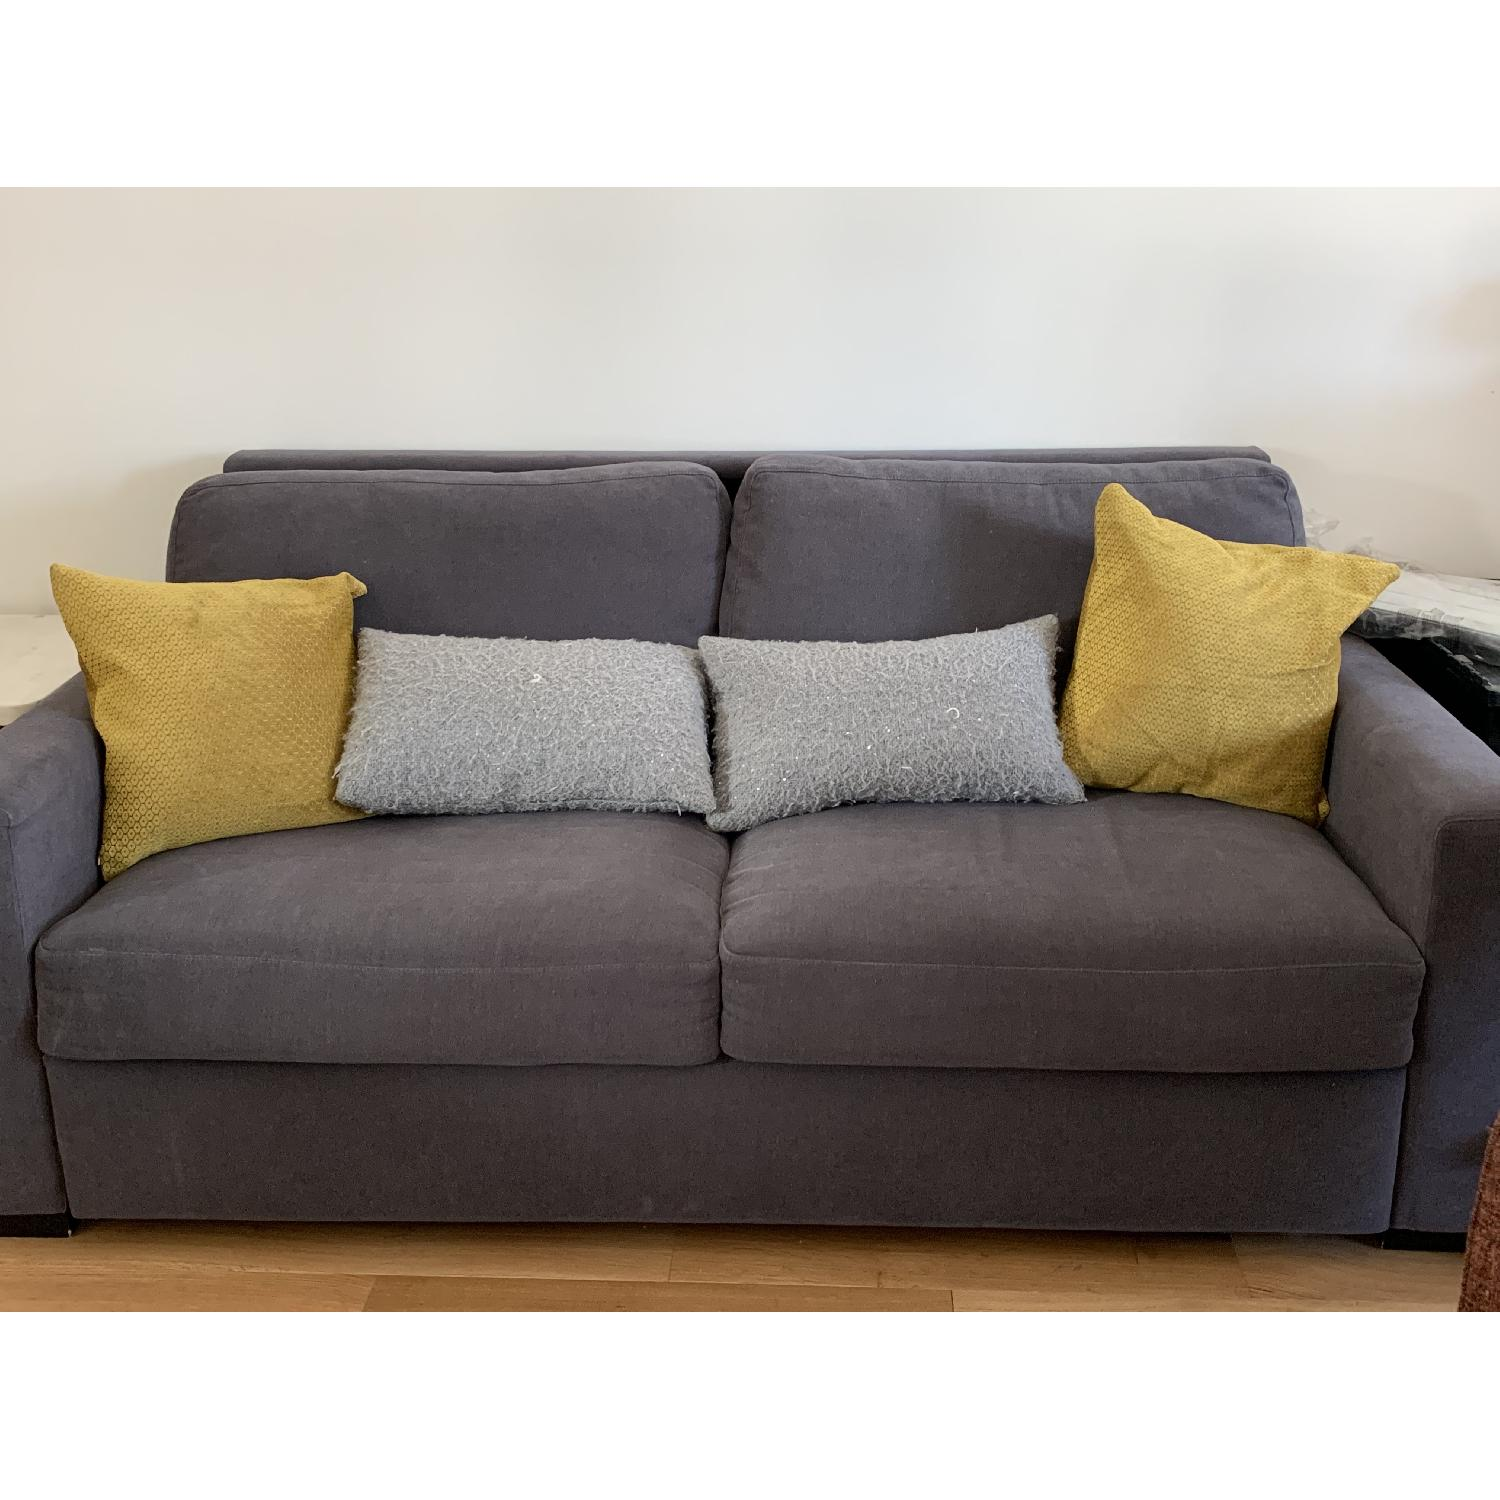 Room & Board Berin Wide Arm Sleeper Sofa in Dark Grey